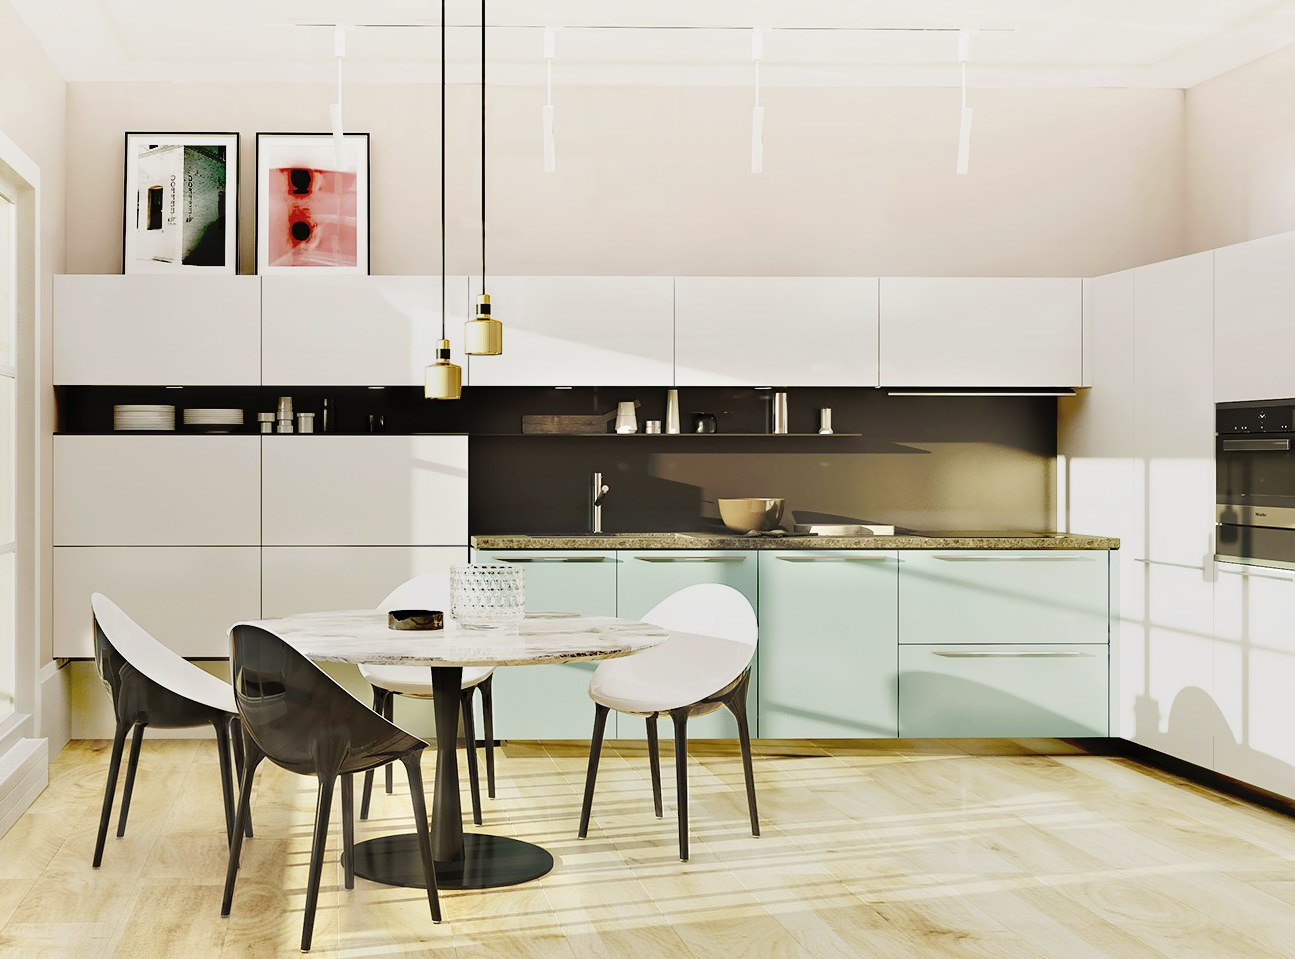 Dining-kitchen-interior-design-Montreal.